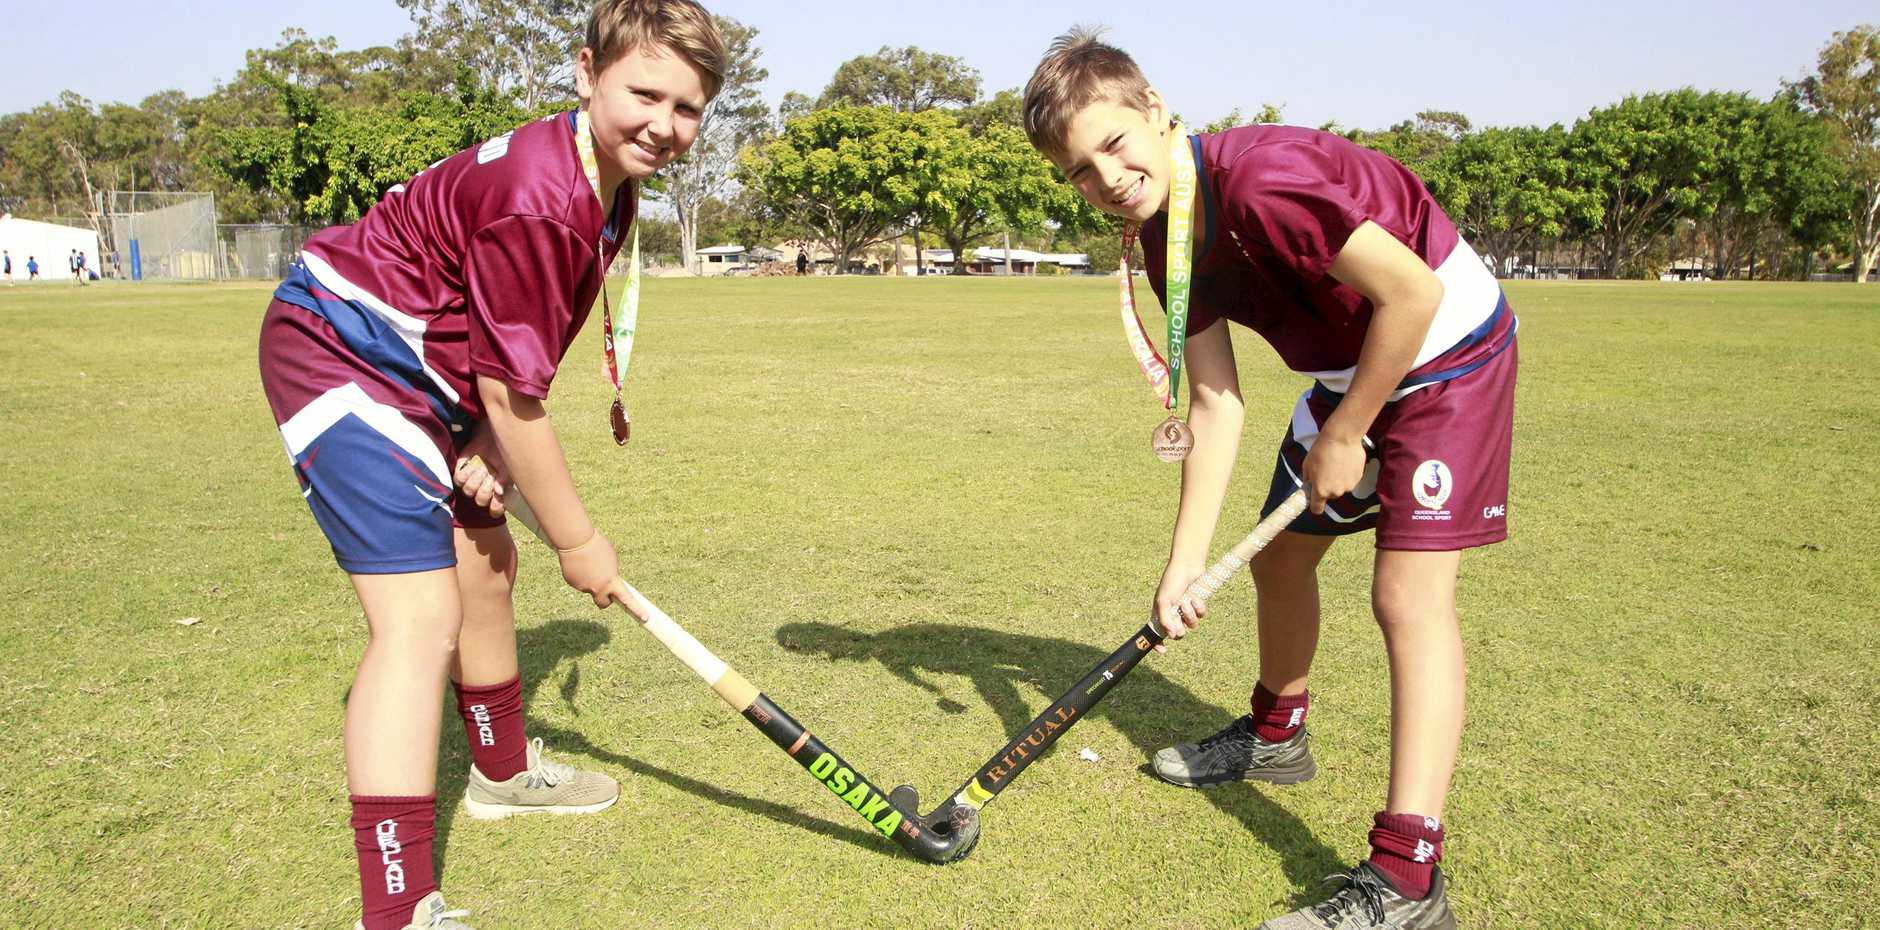 FUTURE KOOKABURRAS: Hockey stars Owen Taylor and Harley Woodall from Kawungan State School showing off their bronze medals.